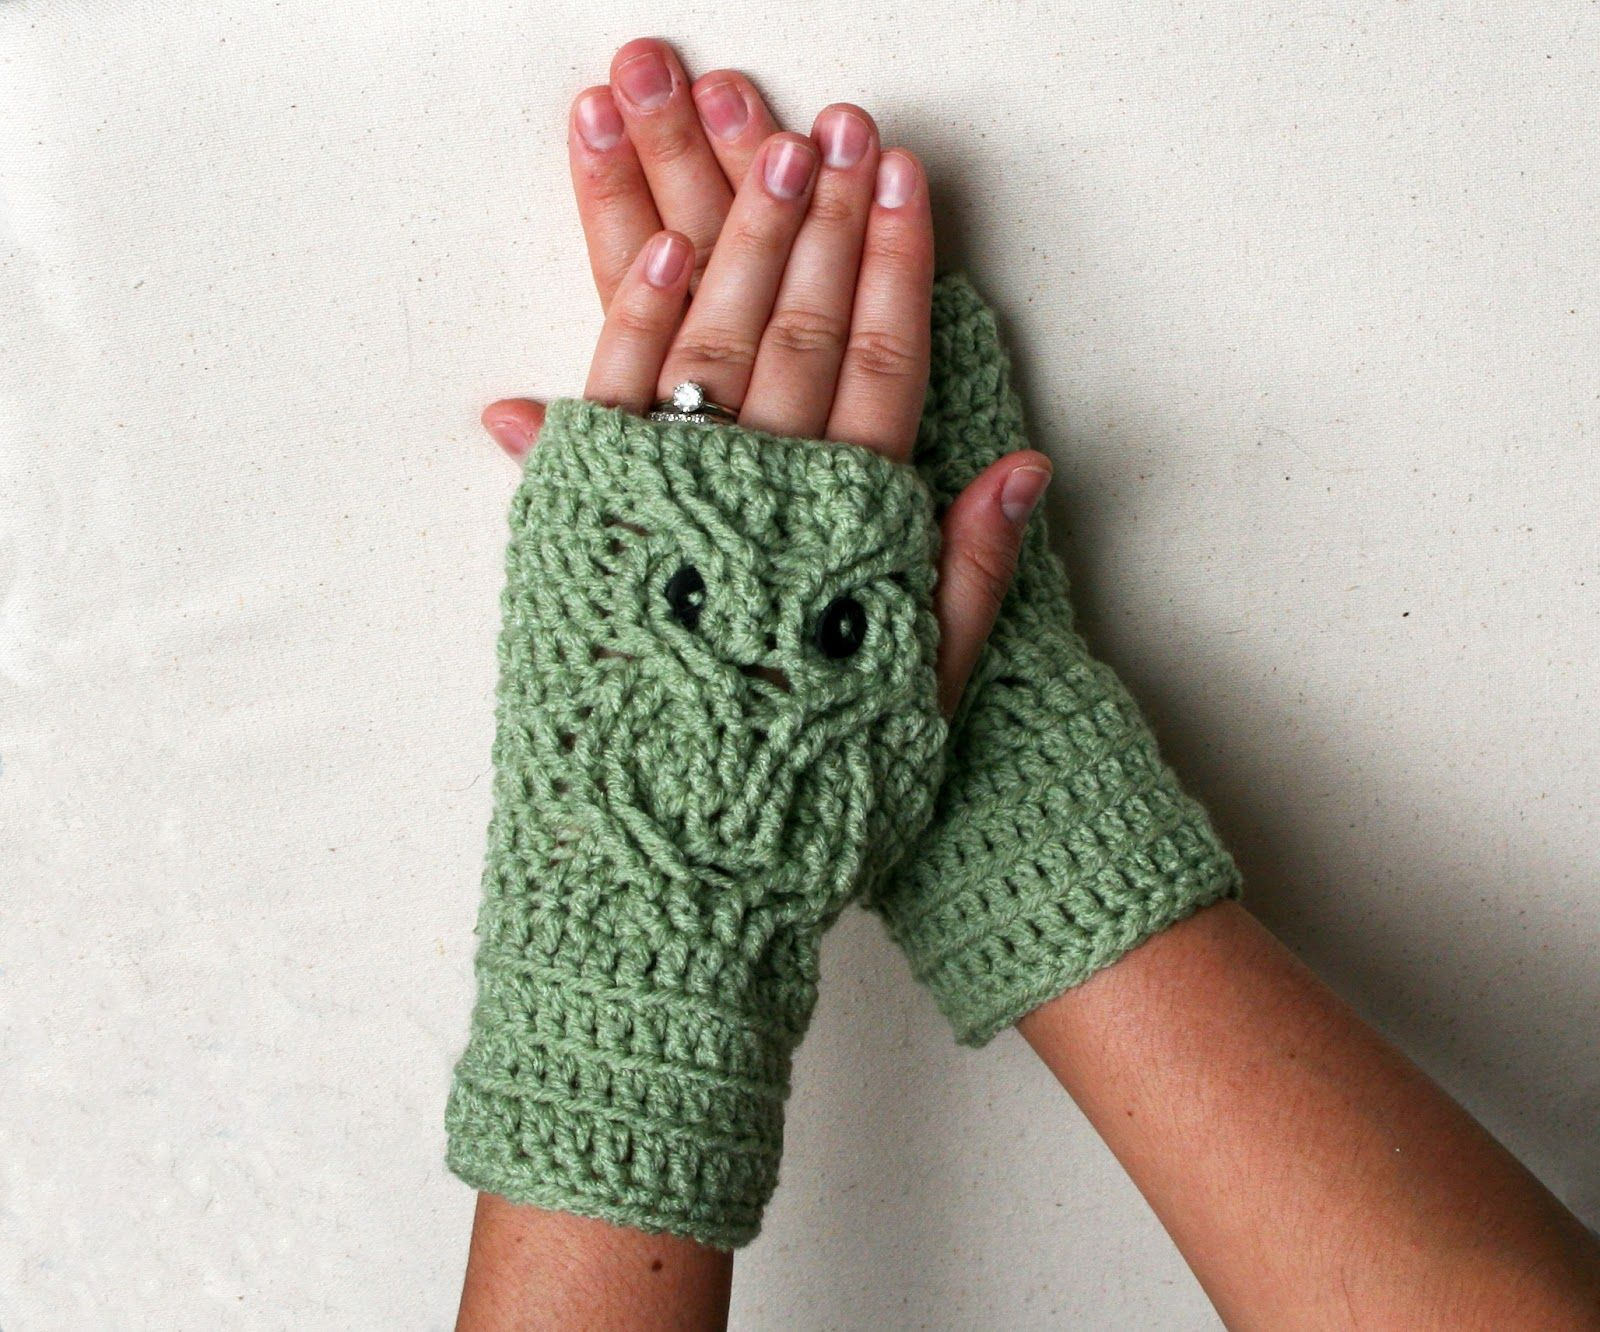 Crochet Owl Fingerless Gloves | needlework | Pinterest | Guantes ...